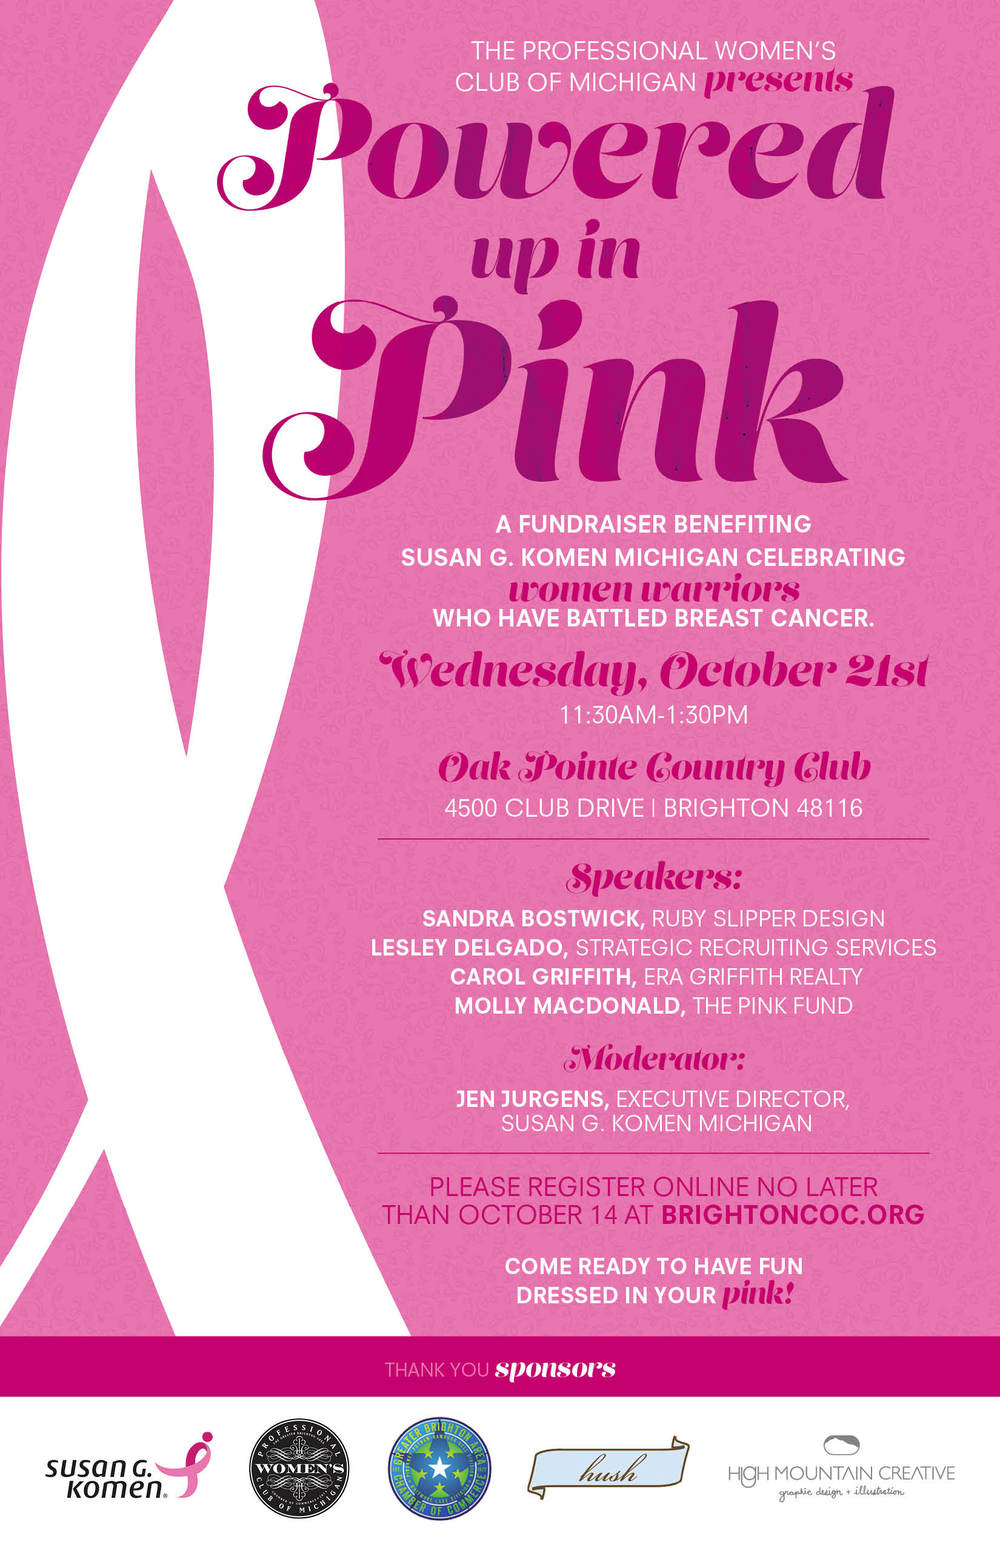 Powered up in Pink Fundraiser Poster for Susan G. Komen and Professional Women's Club of Michigan